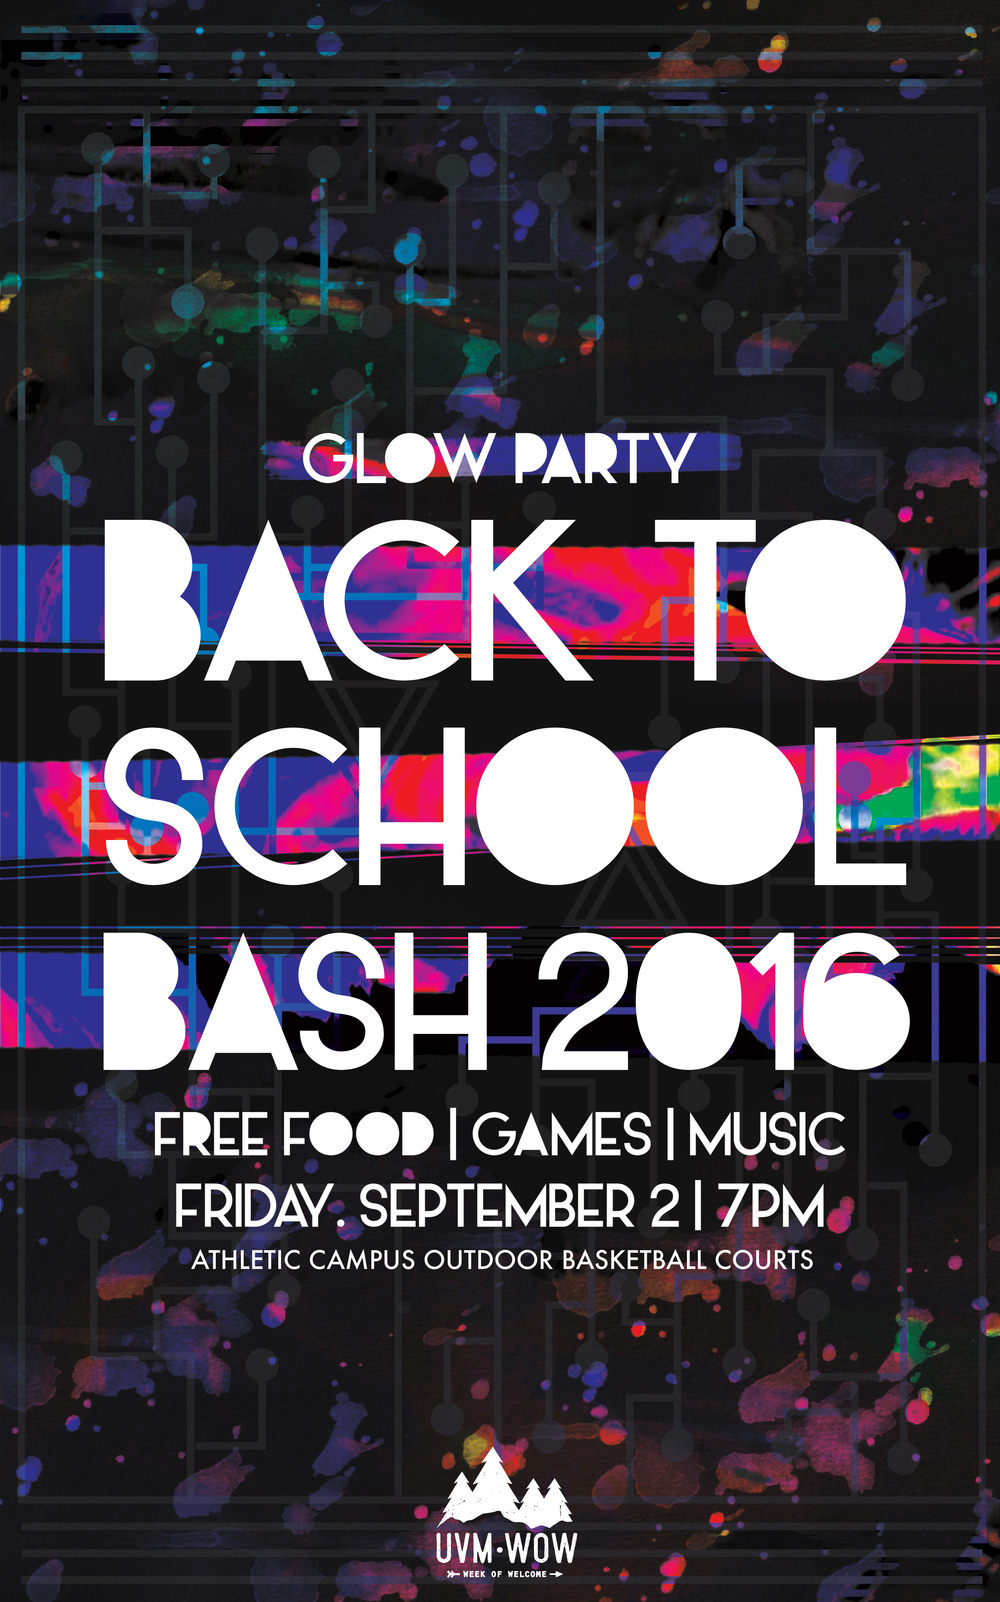 BACK-TO-SCHOOL-BASH-POSTER.jpg